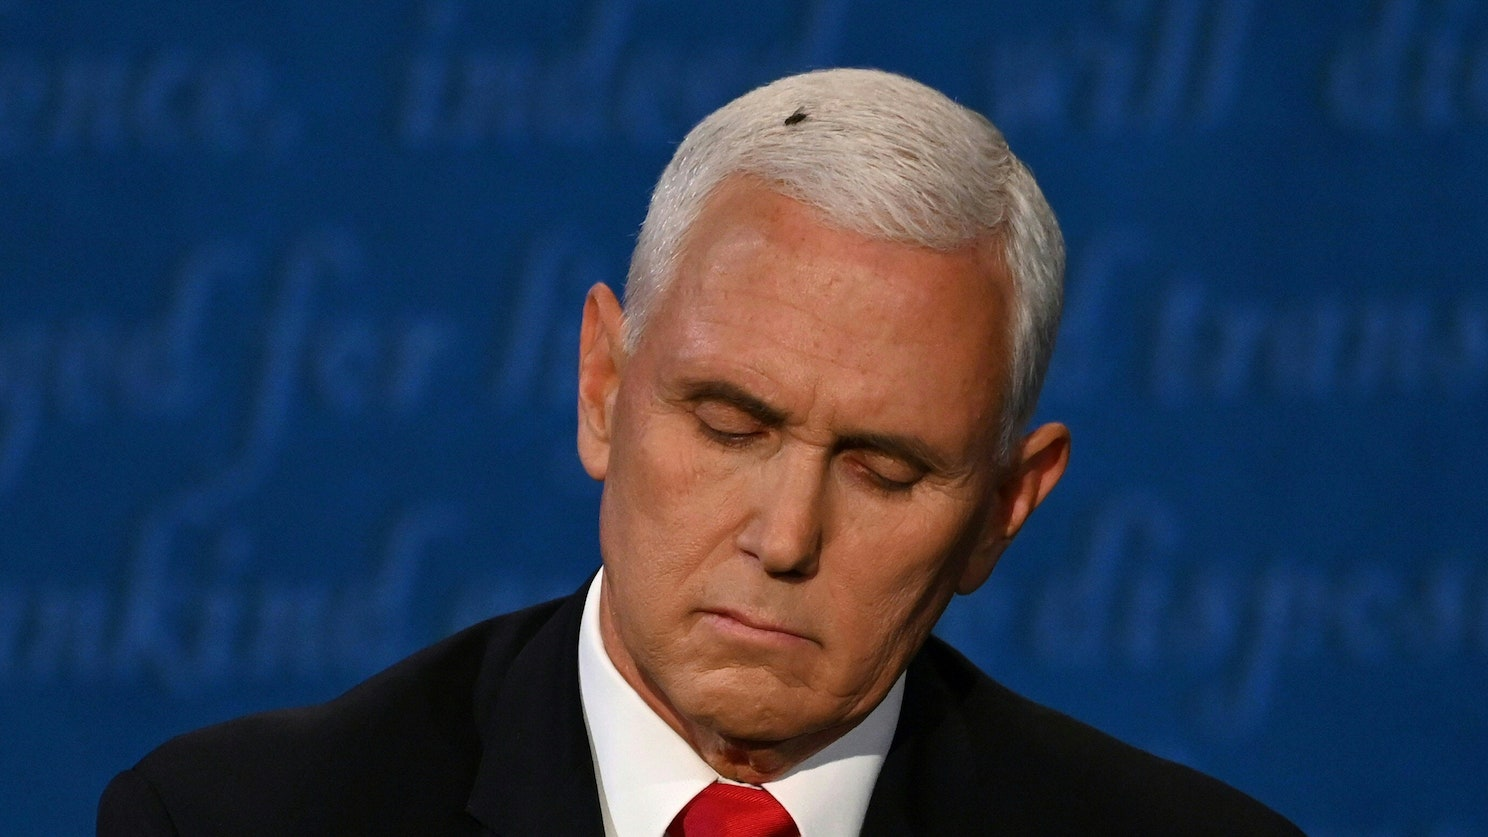 Fly on Mike Pence's Head